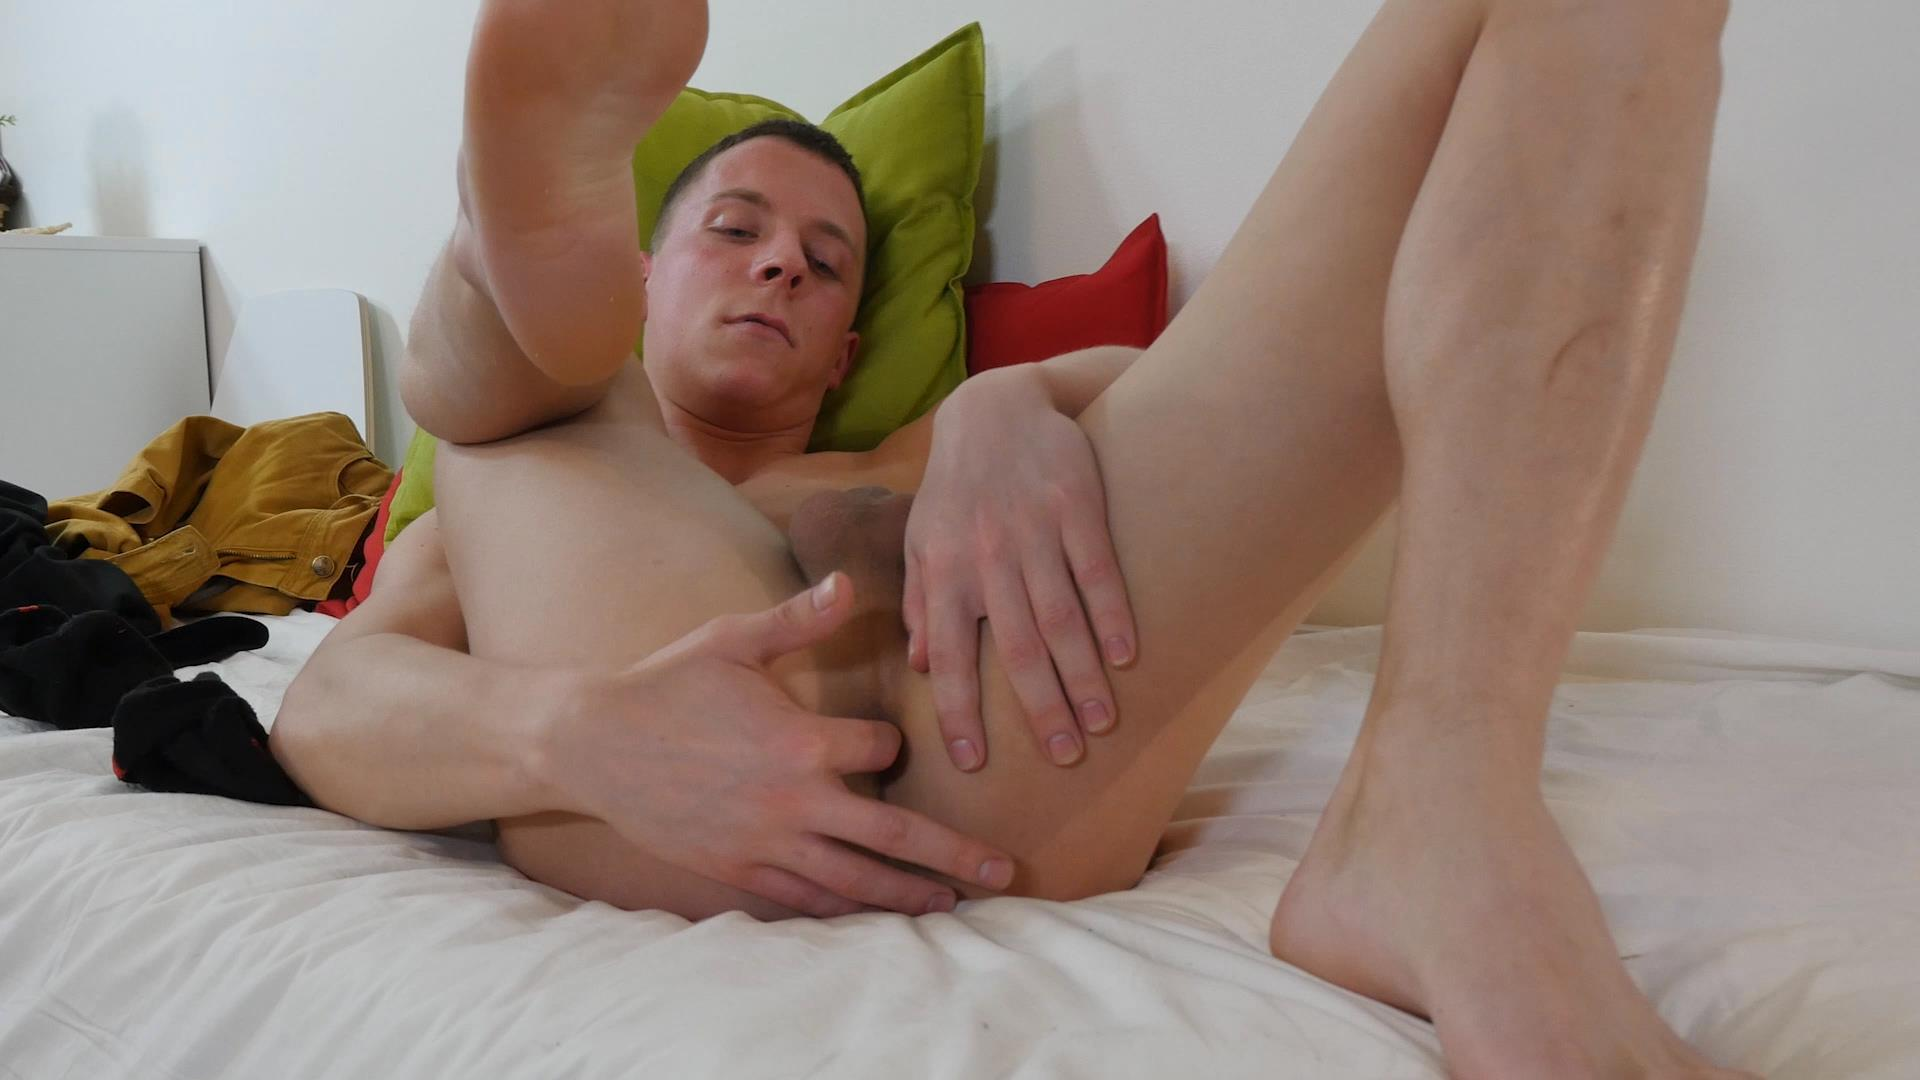 Twink Boys Party Andrew Kitt Twink With Big Uncut Cock Masturbation Amateur Gay Porn 19